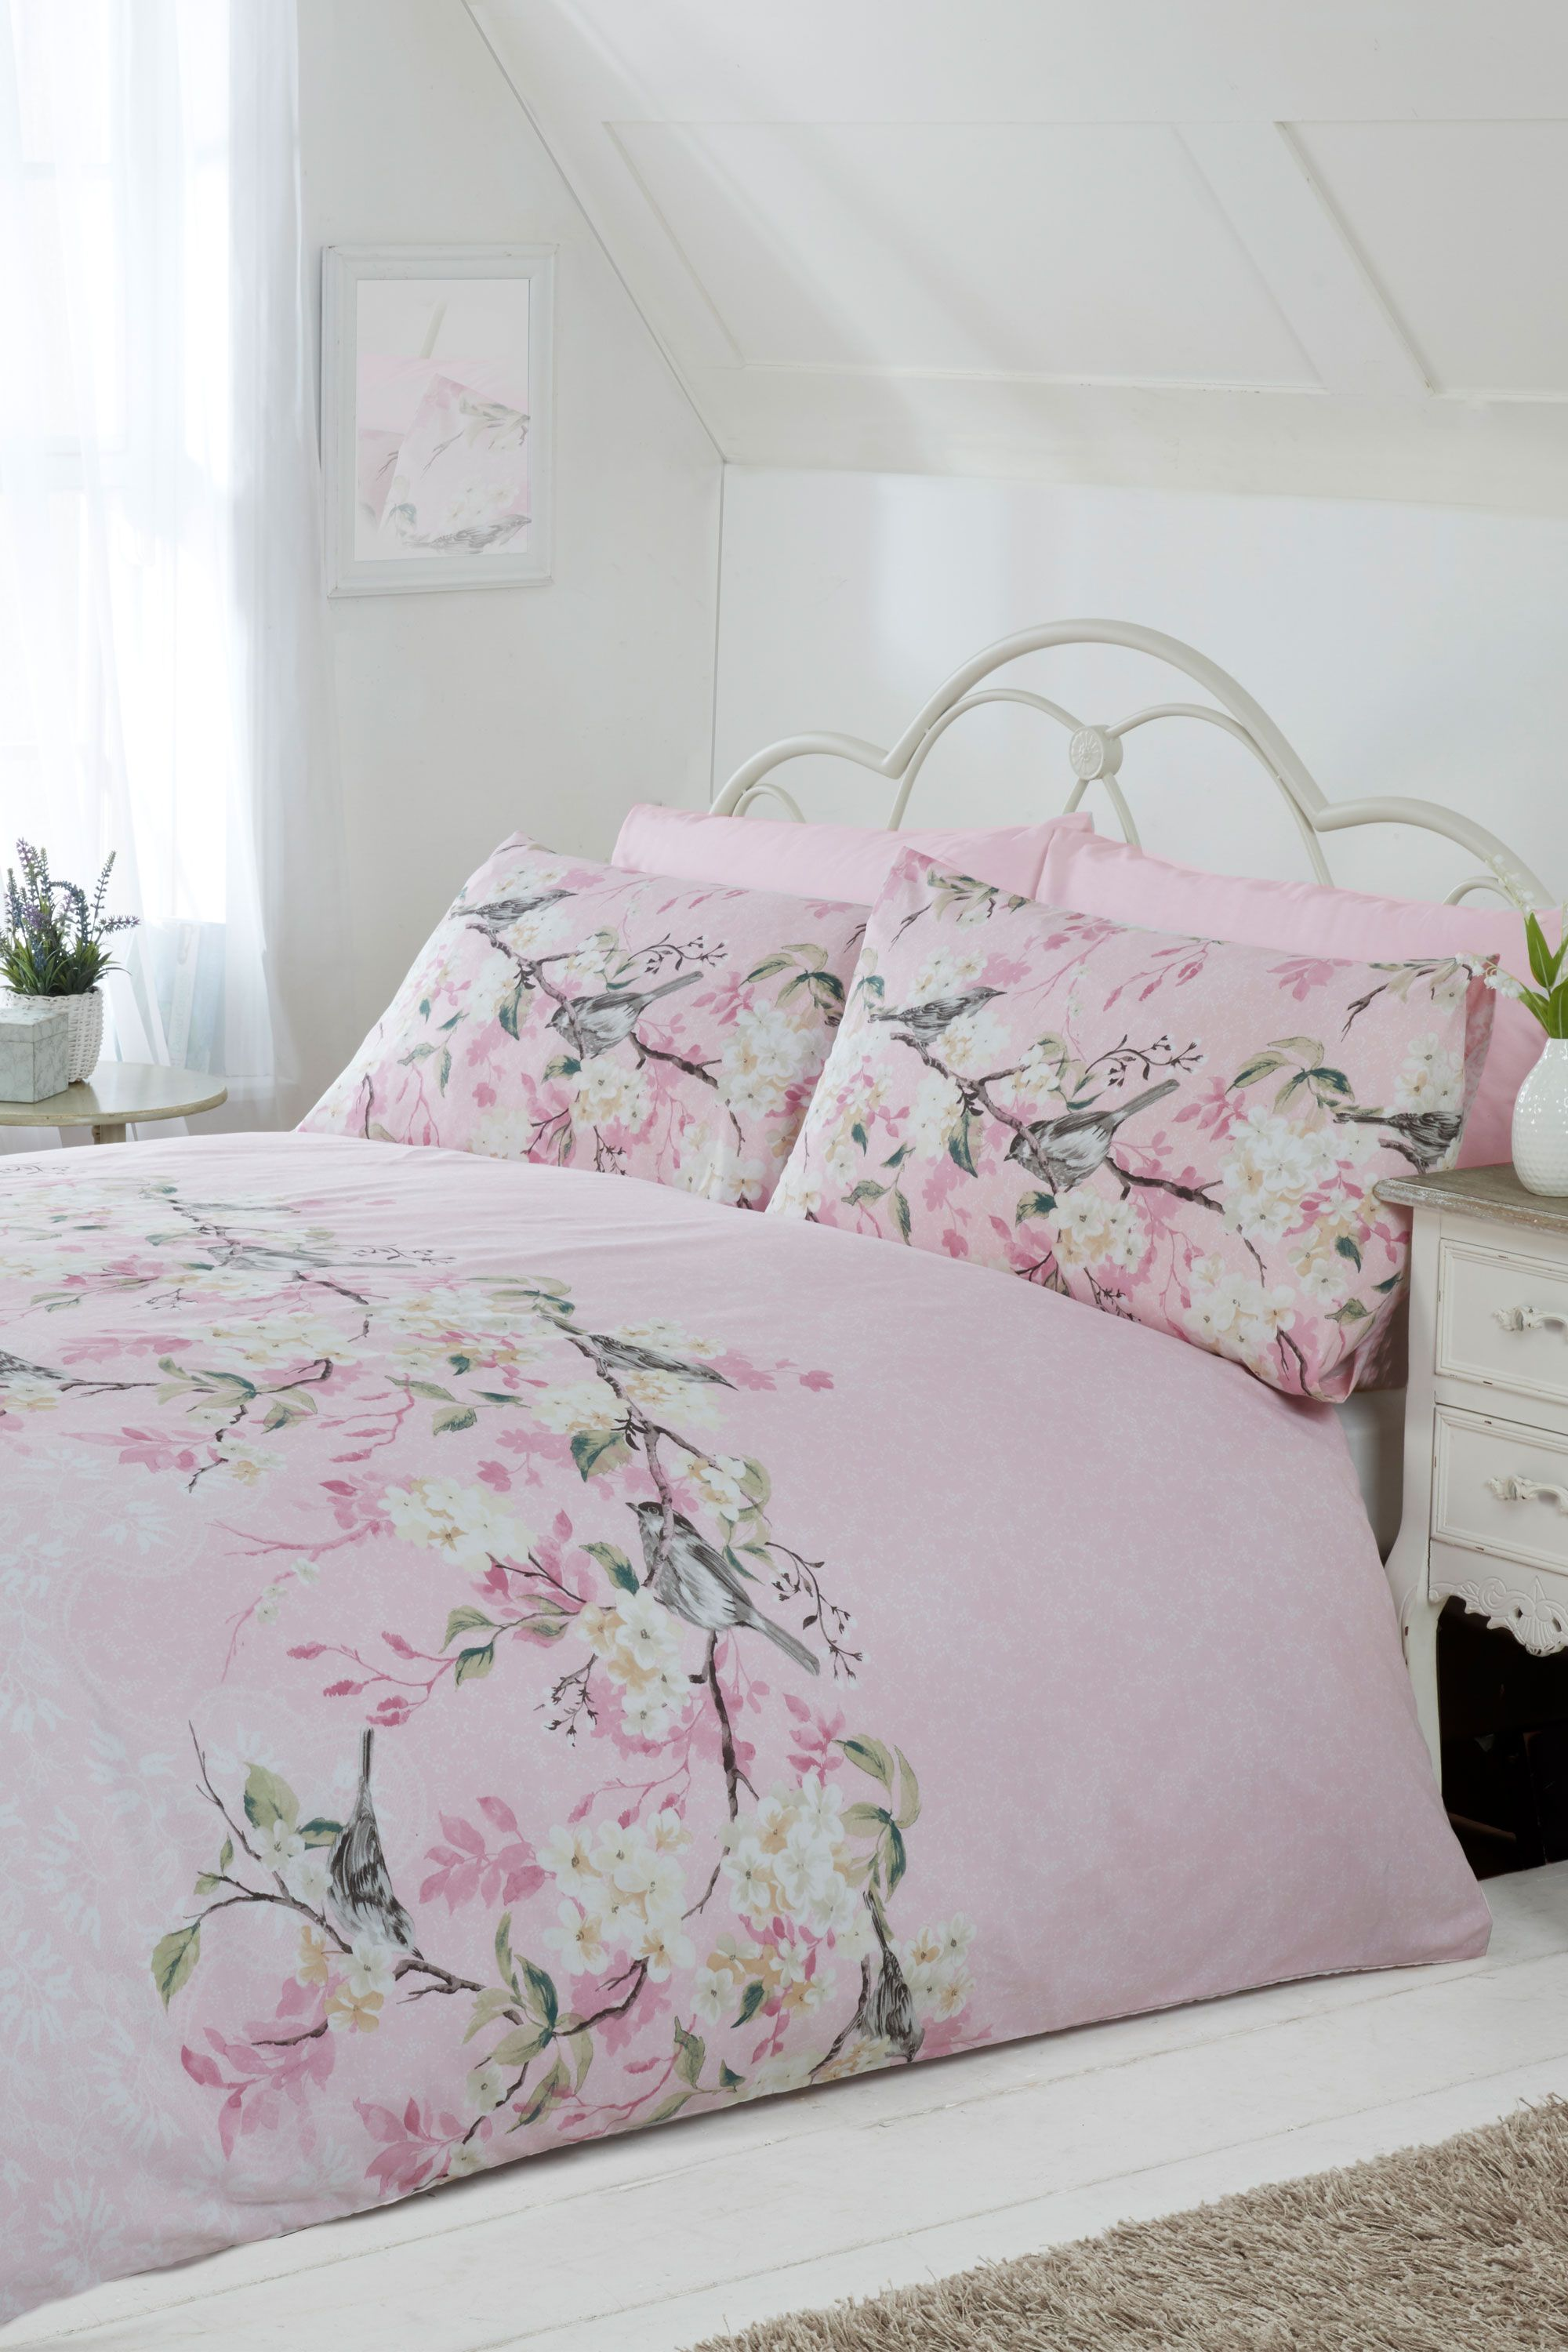 designs carousel pink covers duvet large floral cover watercolor